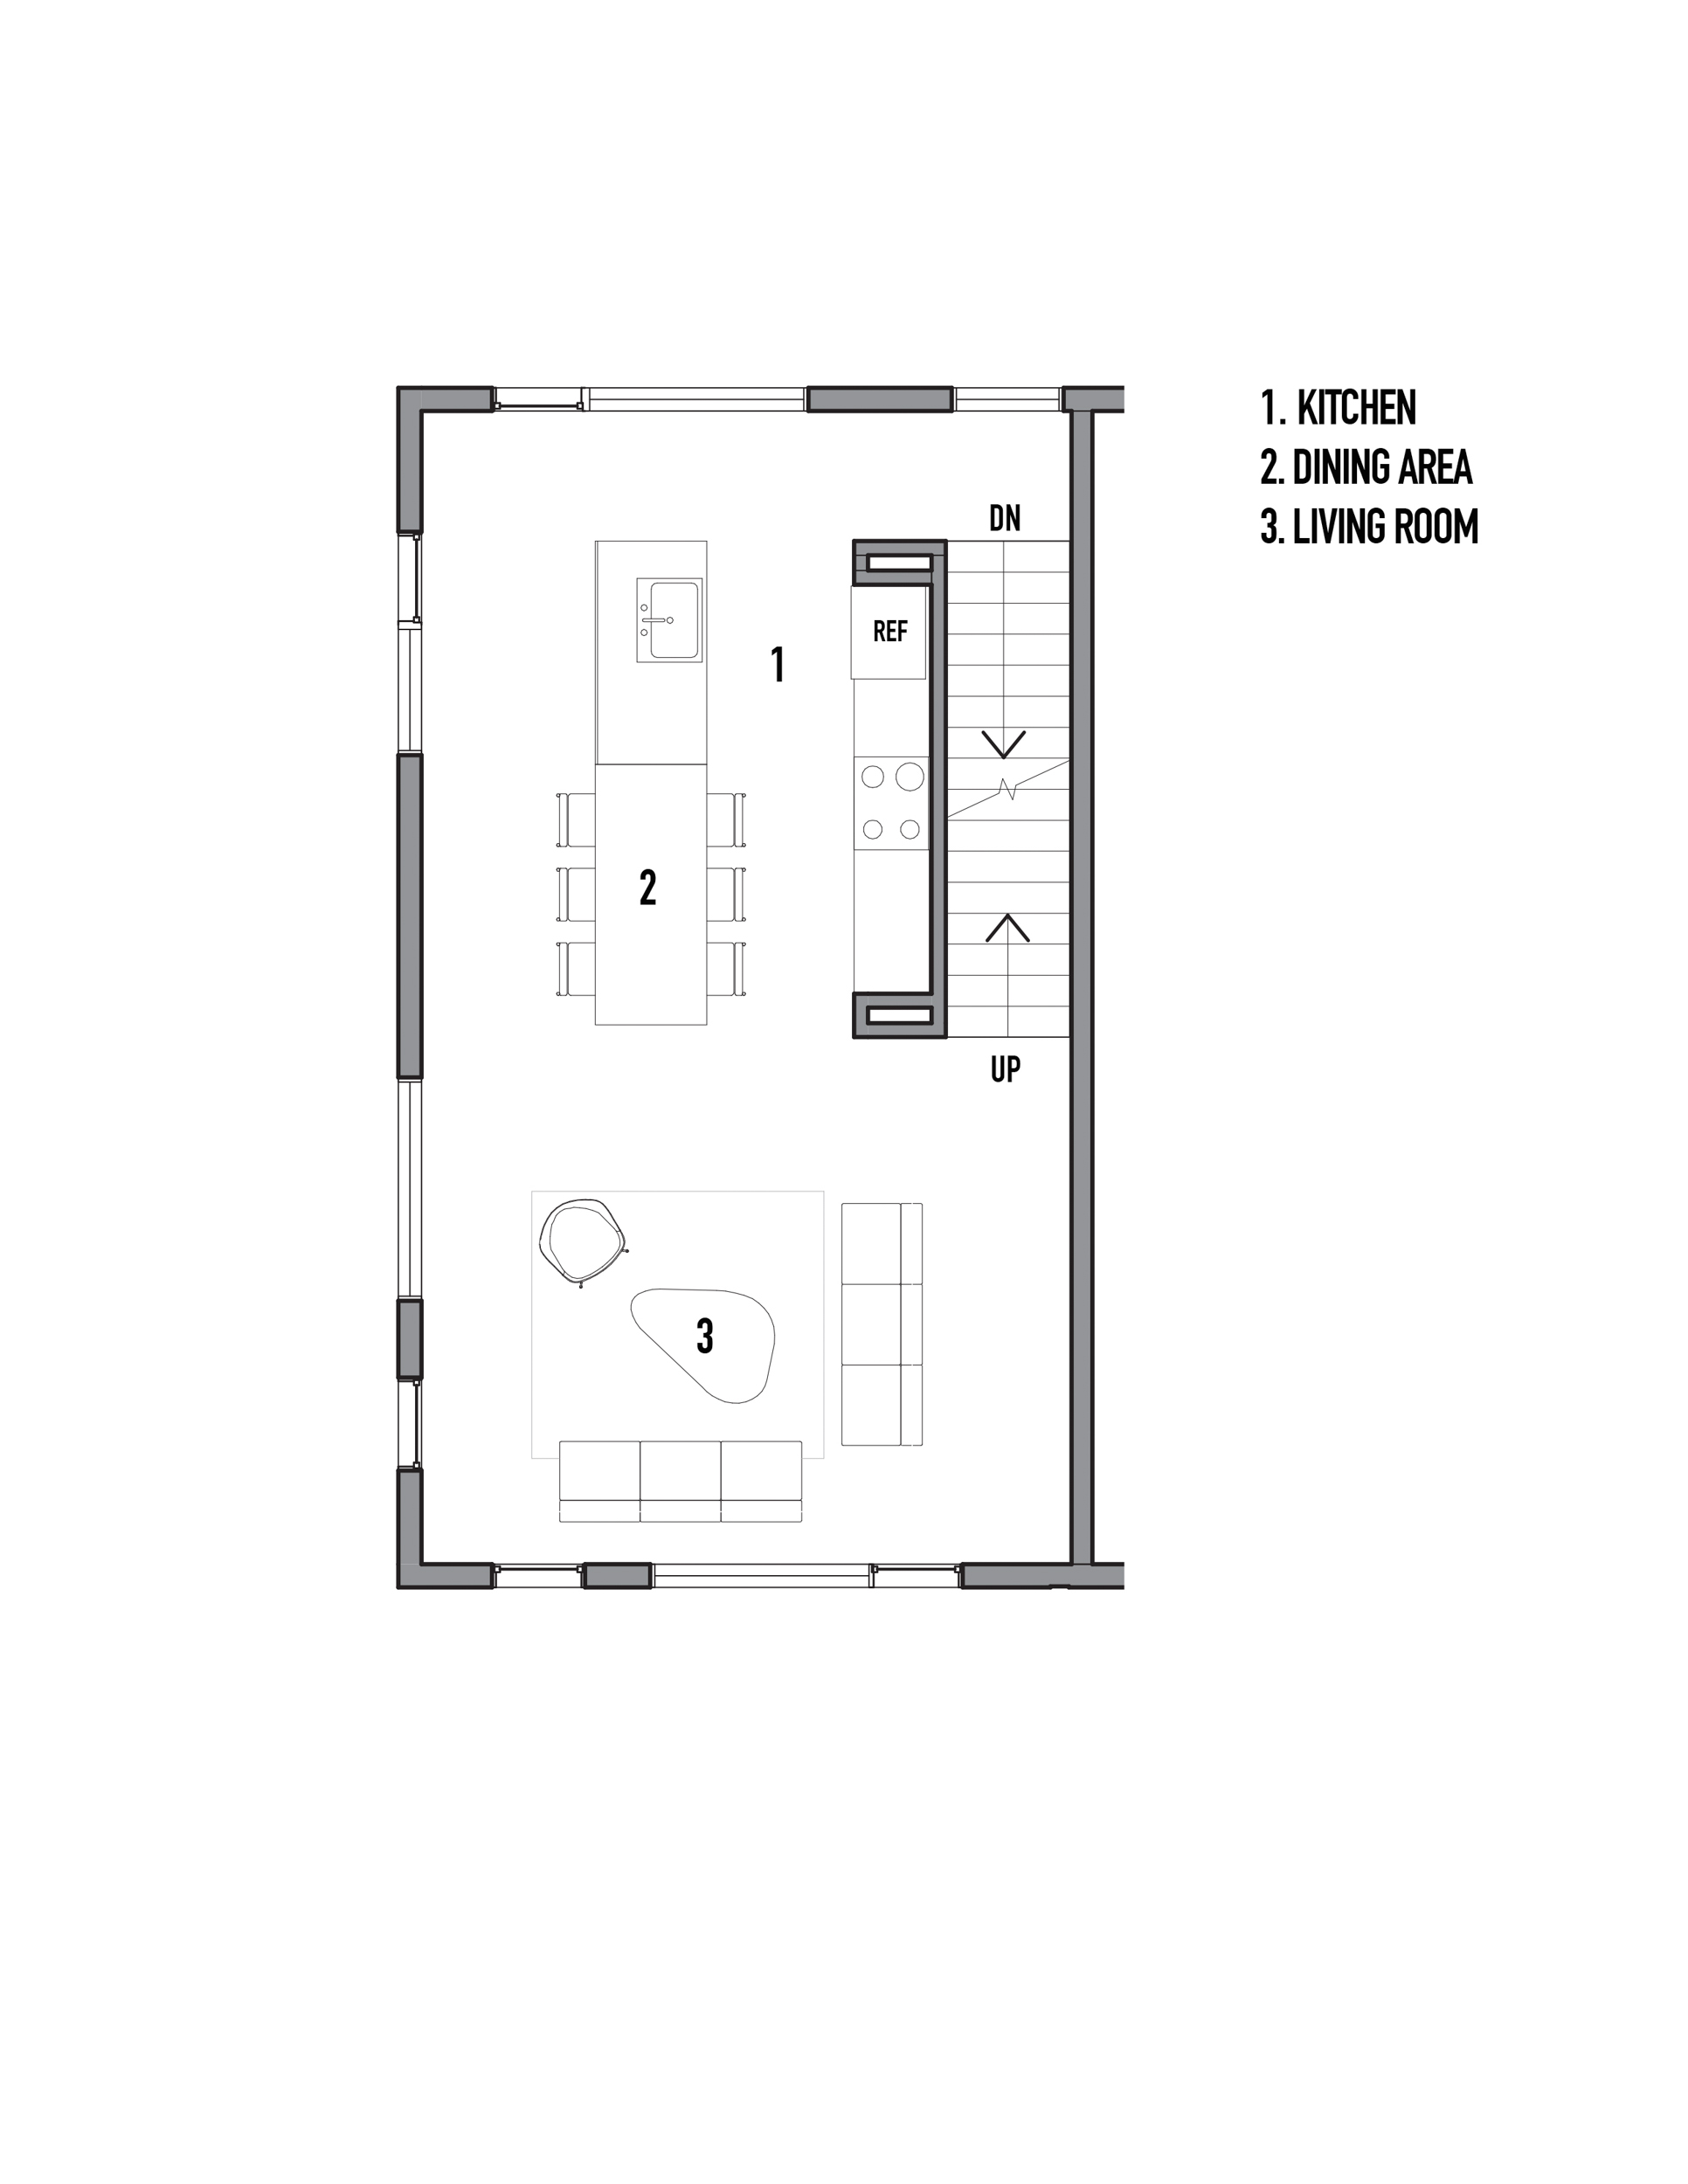 The kitchen and living room layout maximize the small footprint